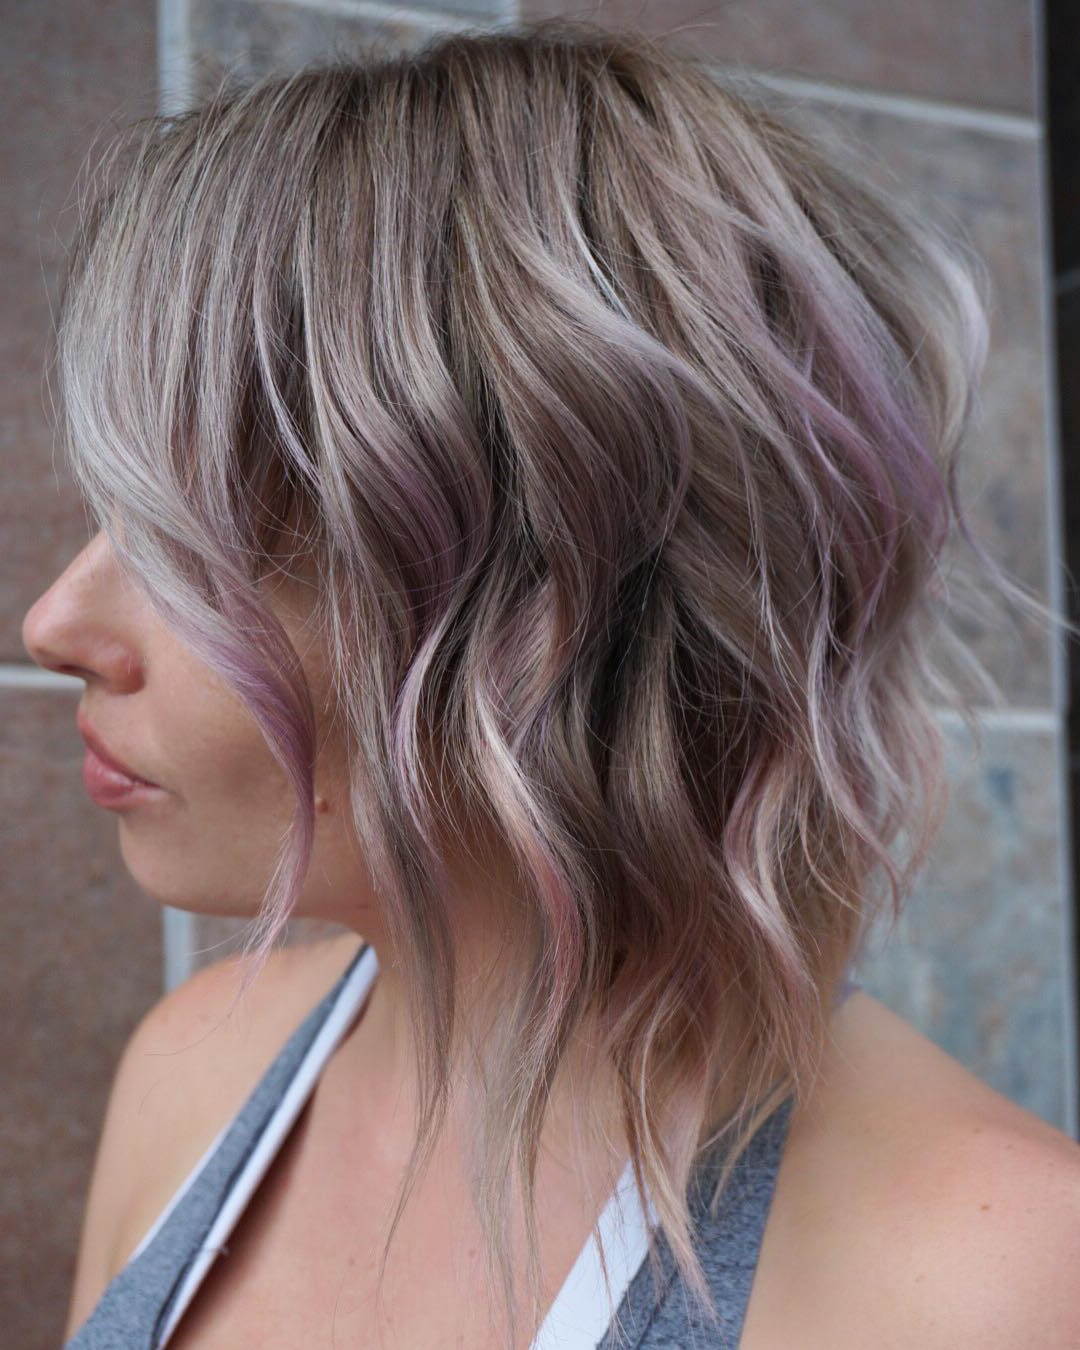 10 Balayage Hair Styles For Medium Length Hair 2020 Regarding Well Known Balayage Hairstyles For Shoulder Length Shag (View 13 of 20)